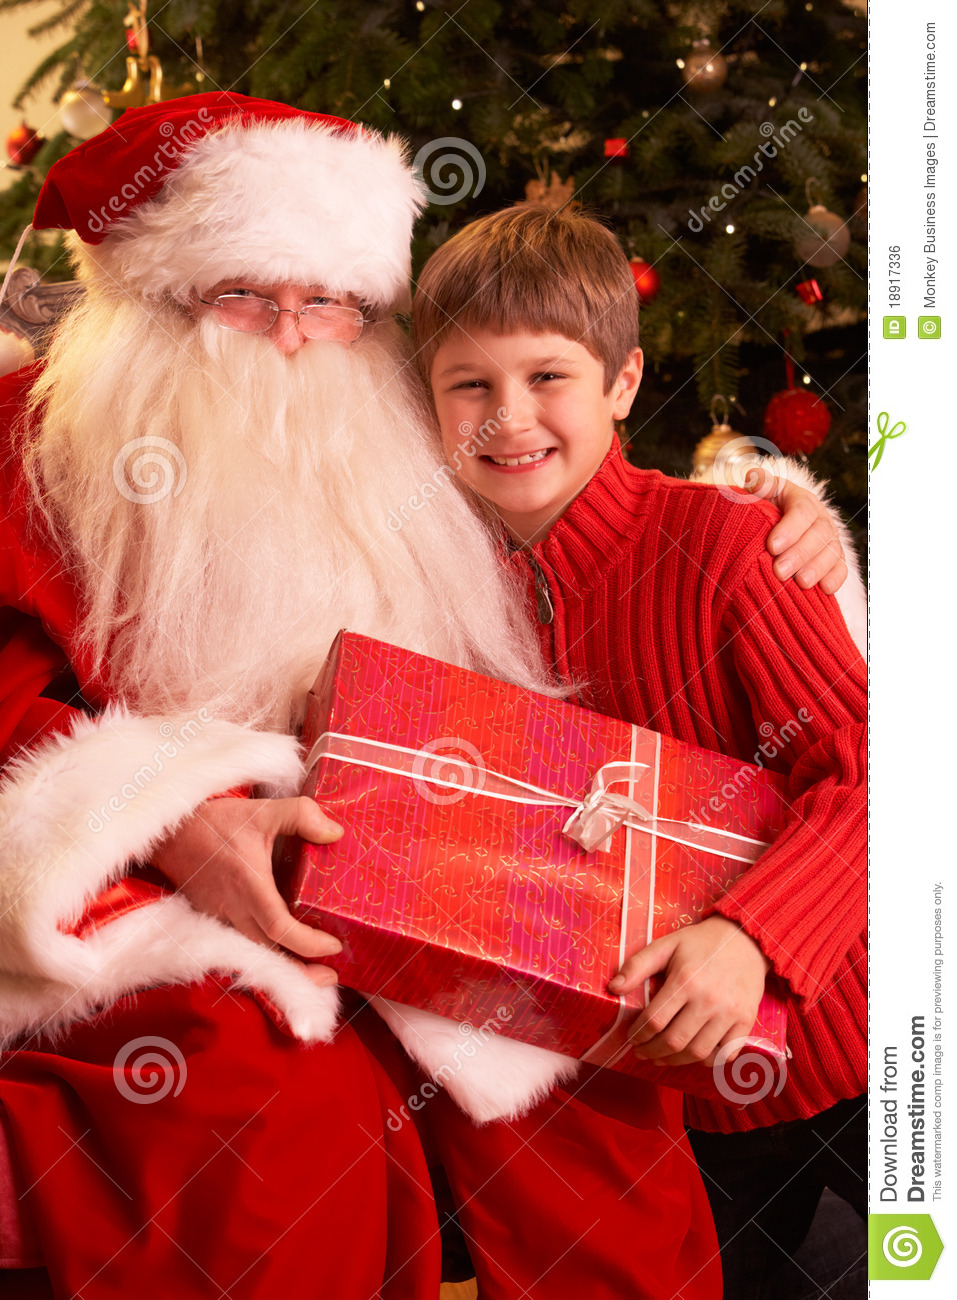 Christmas For 11 Year Old Boy